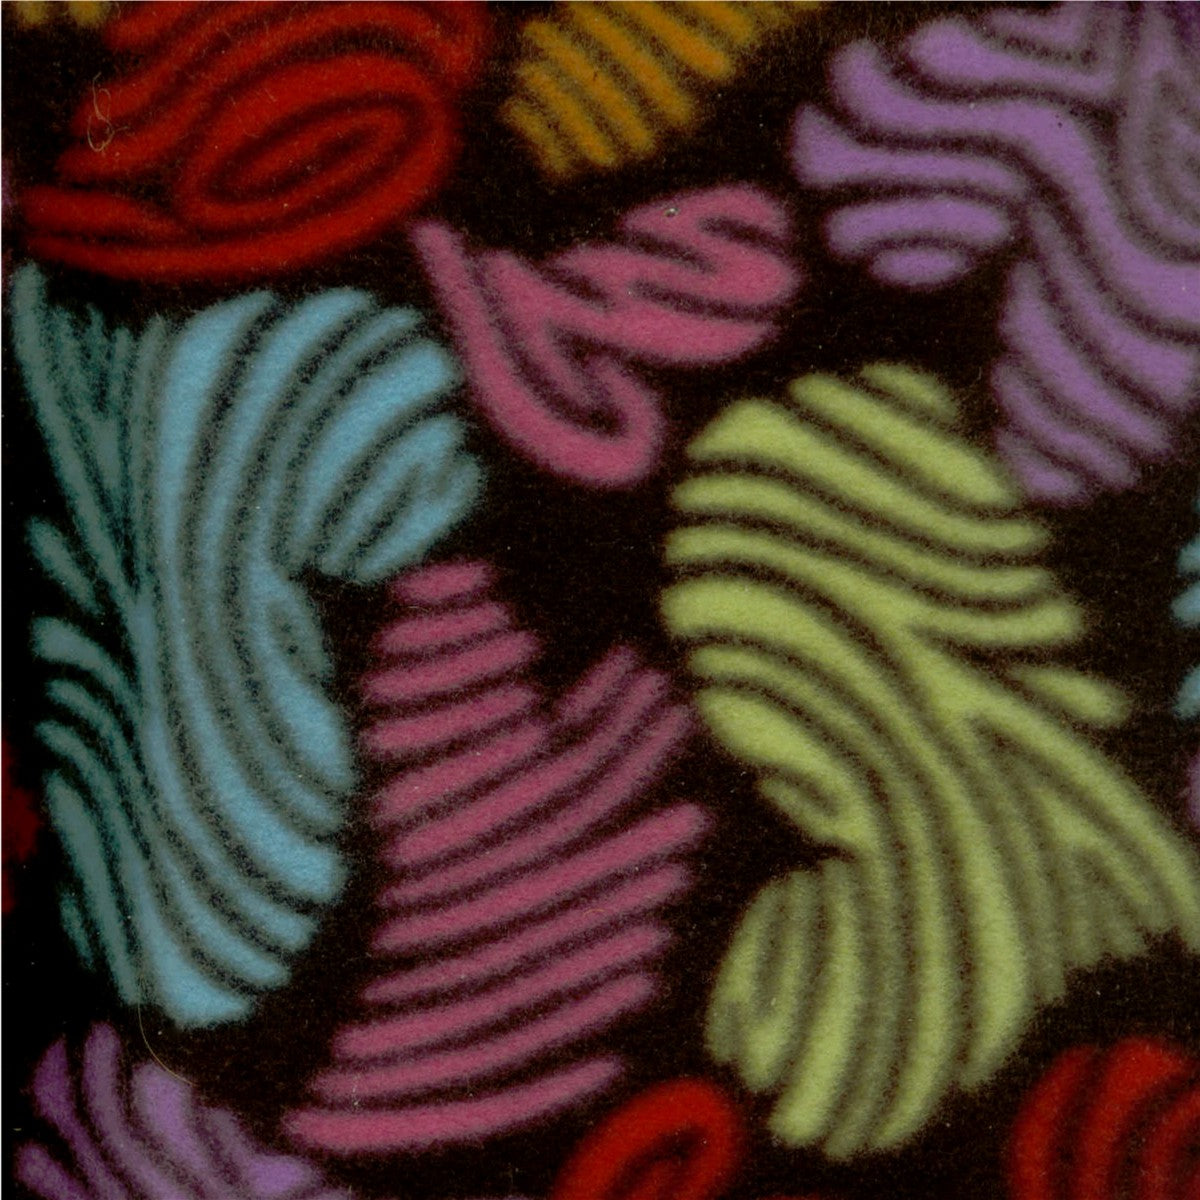 Fleece Casts Covers - Cozy Fashions for Casts TM Covers for